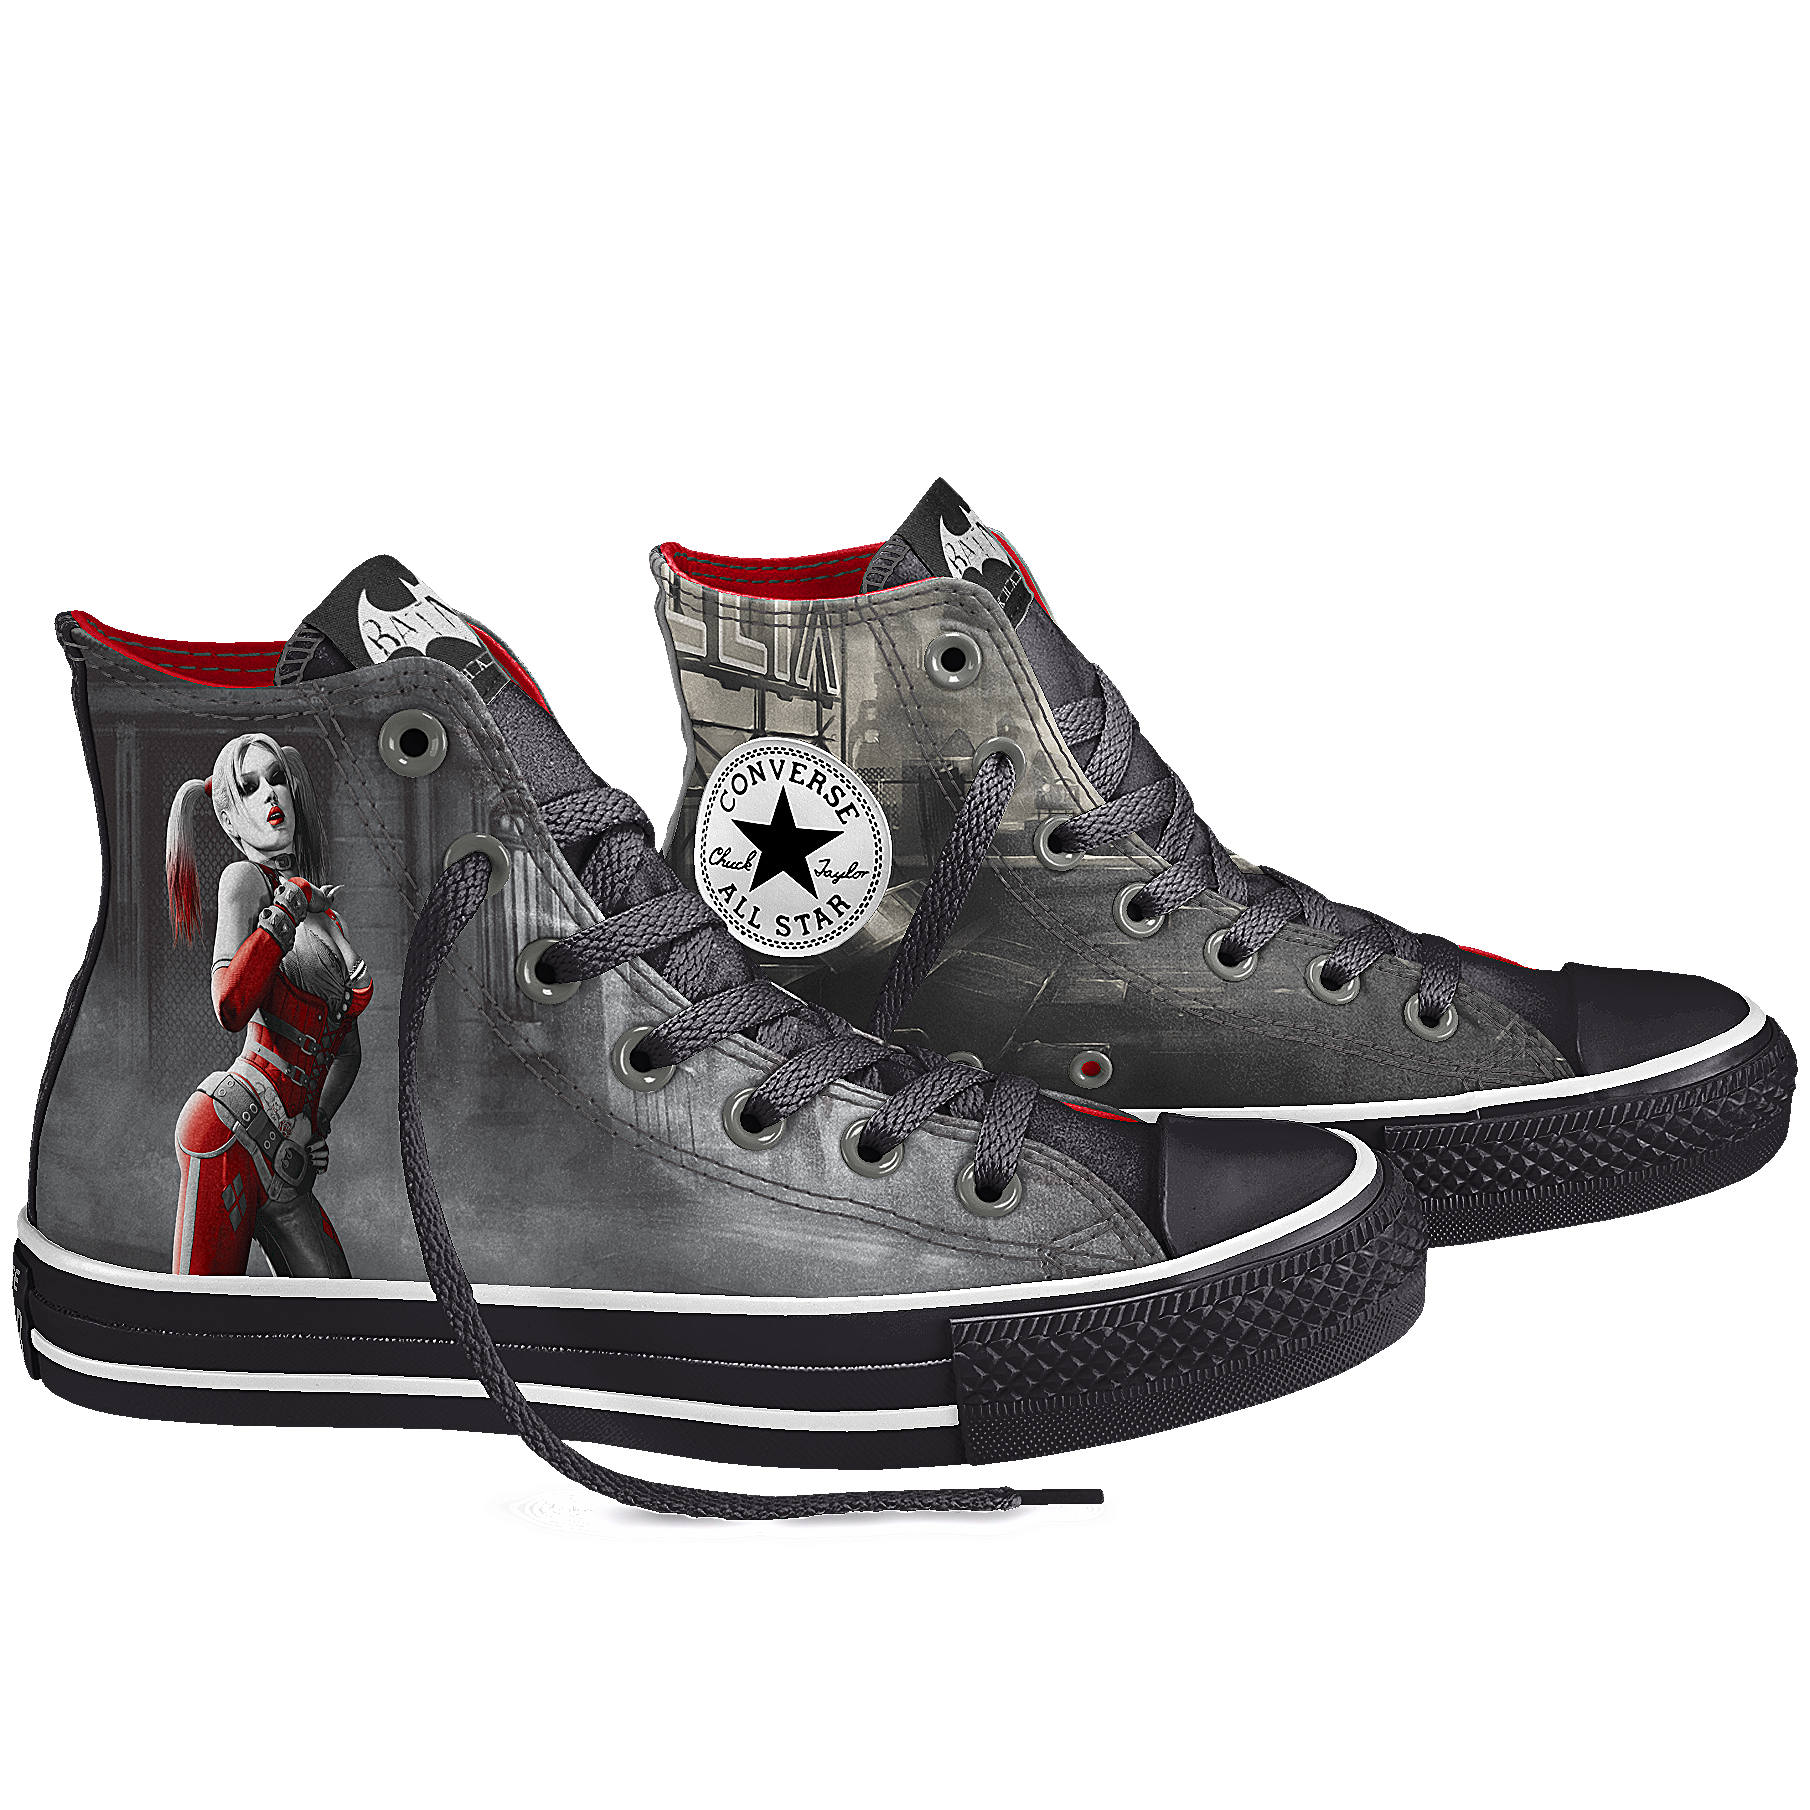 Chuck Taylor Design Your Own Uk